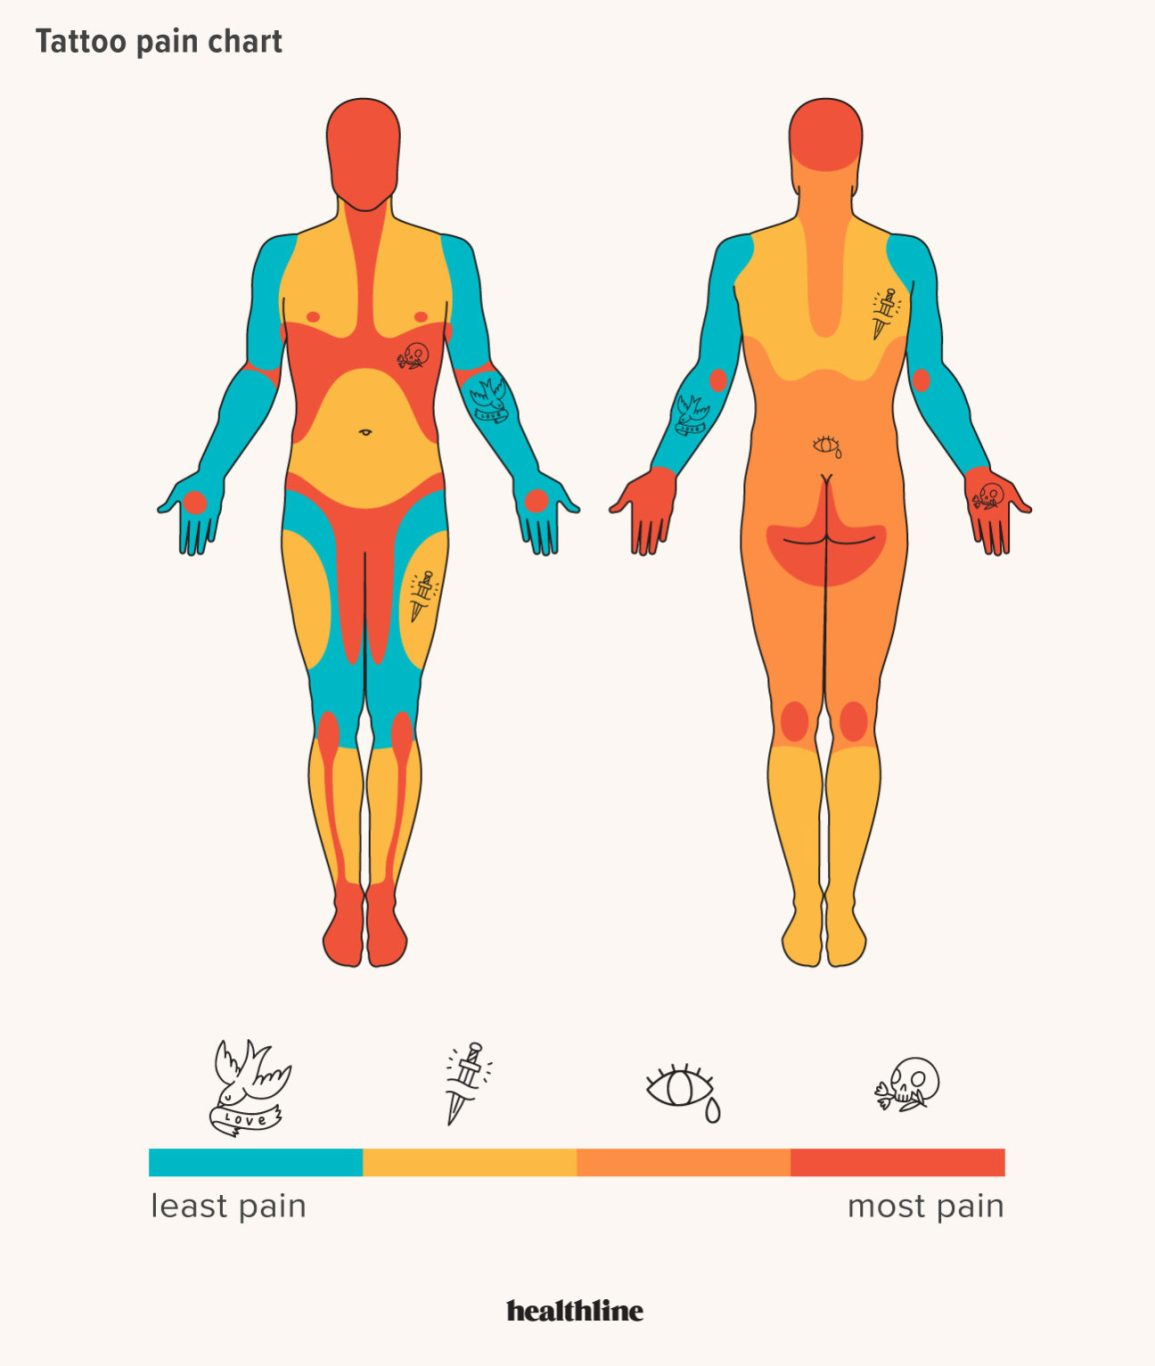 Tattoo Pain Chart: Where It Hurts Most and Least, and More